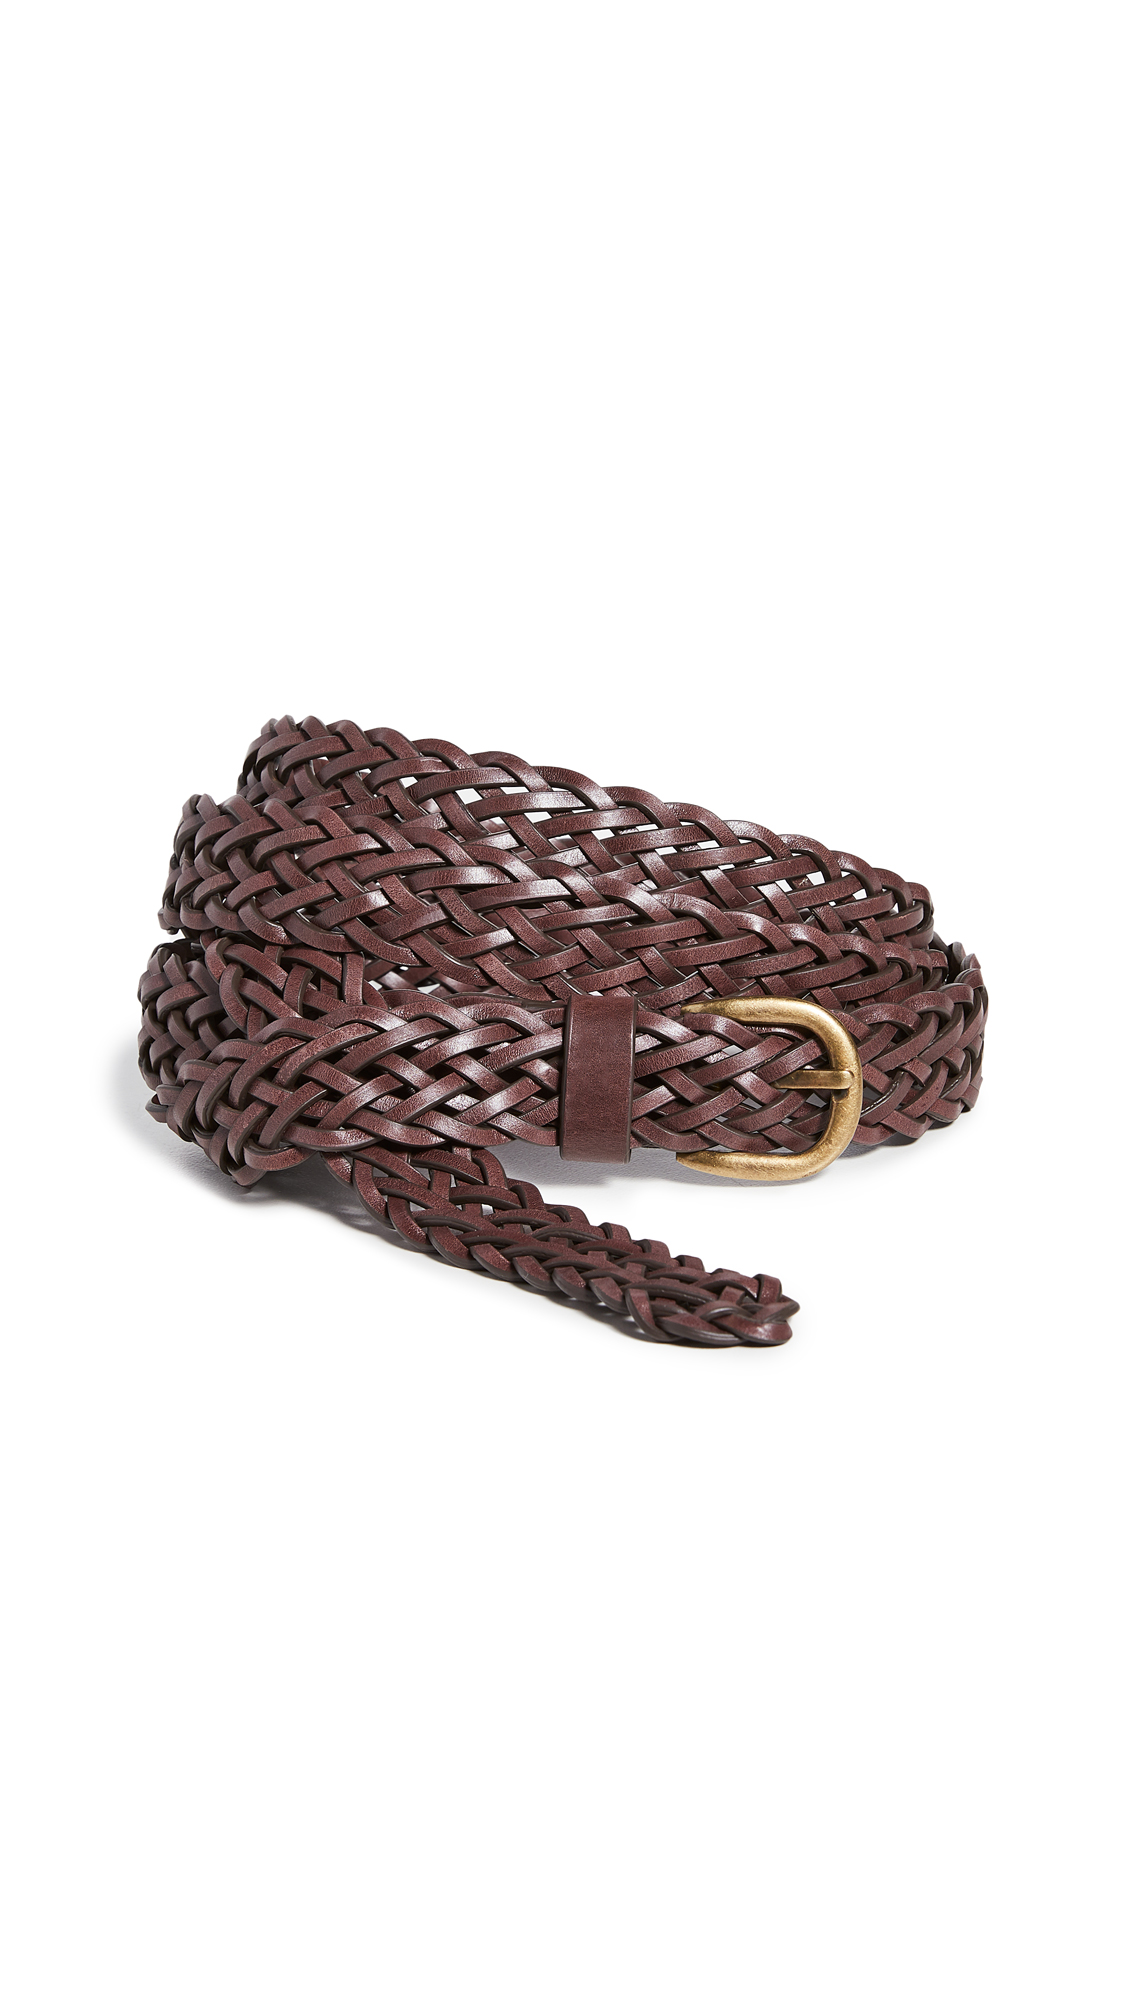 Zimmermann Braided Belt